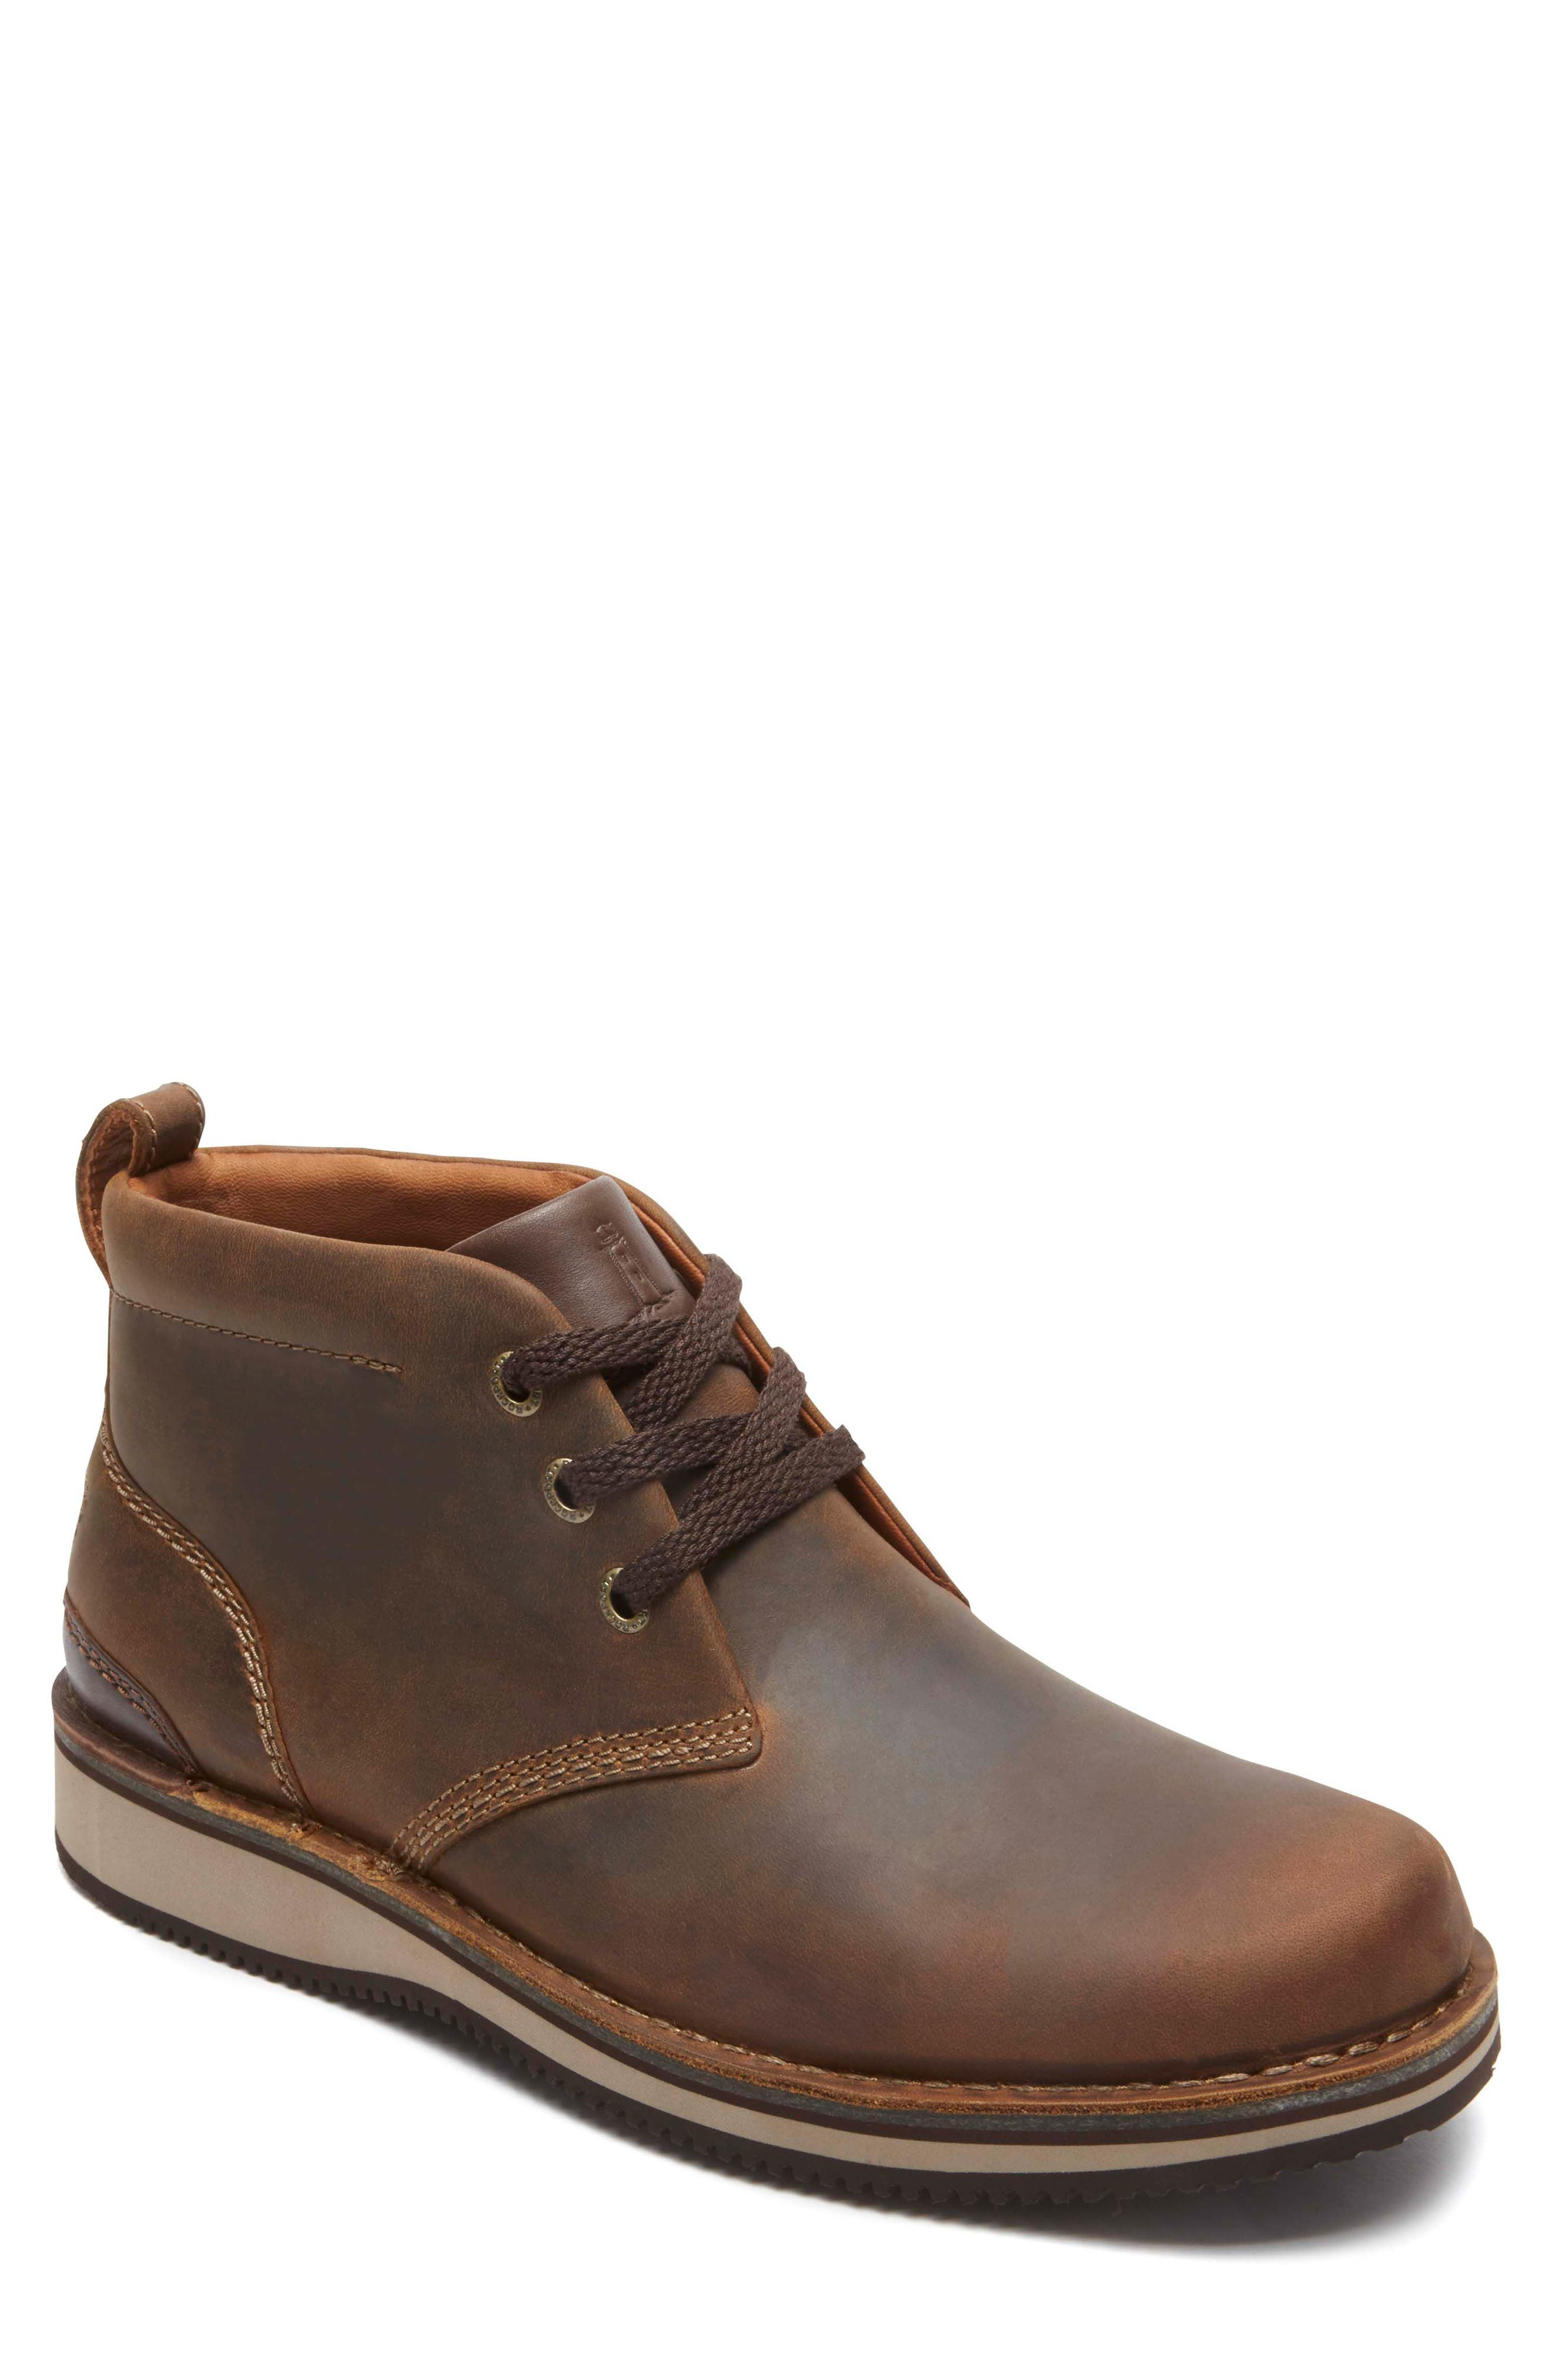 'Prestige Point' Chukka Boot,                         Main,                         color, Beeswax Leather